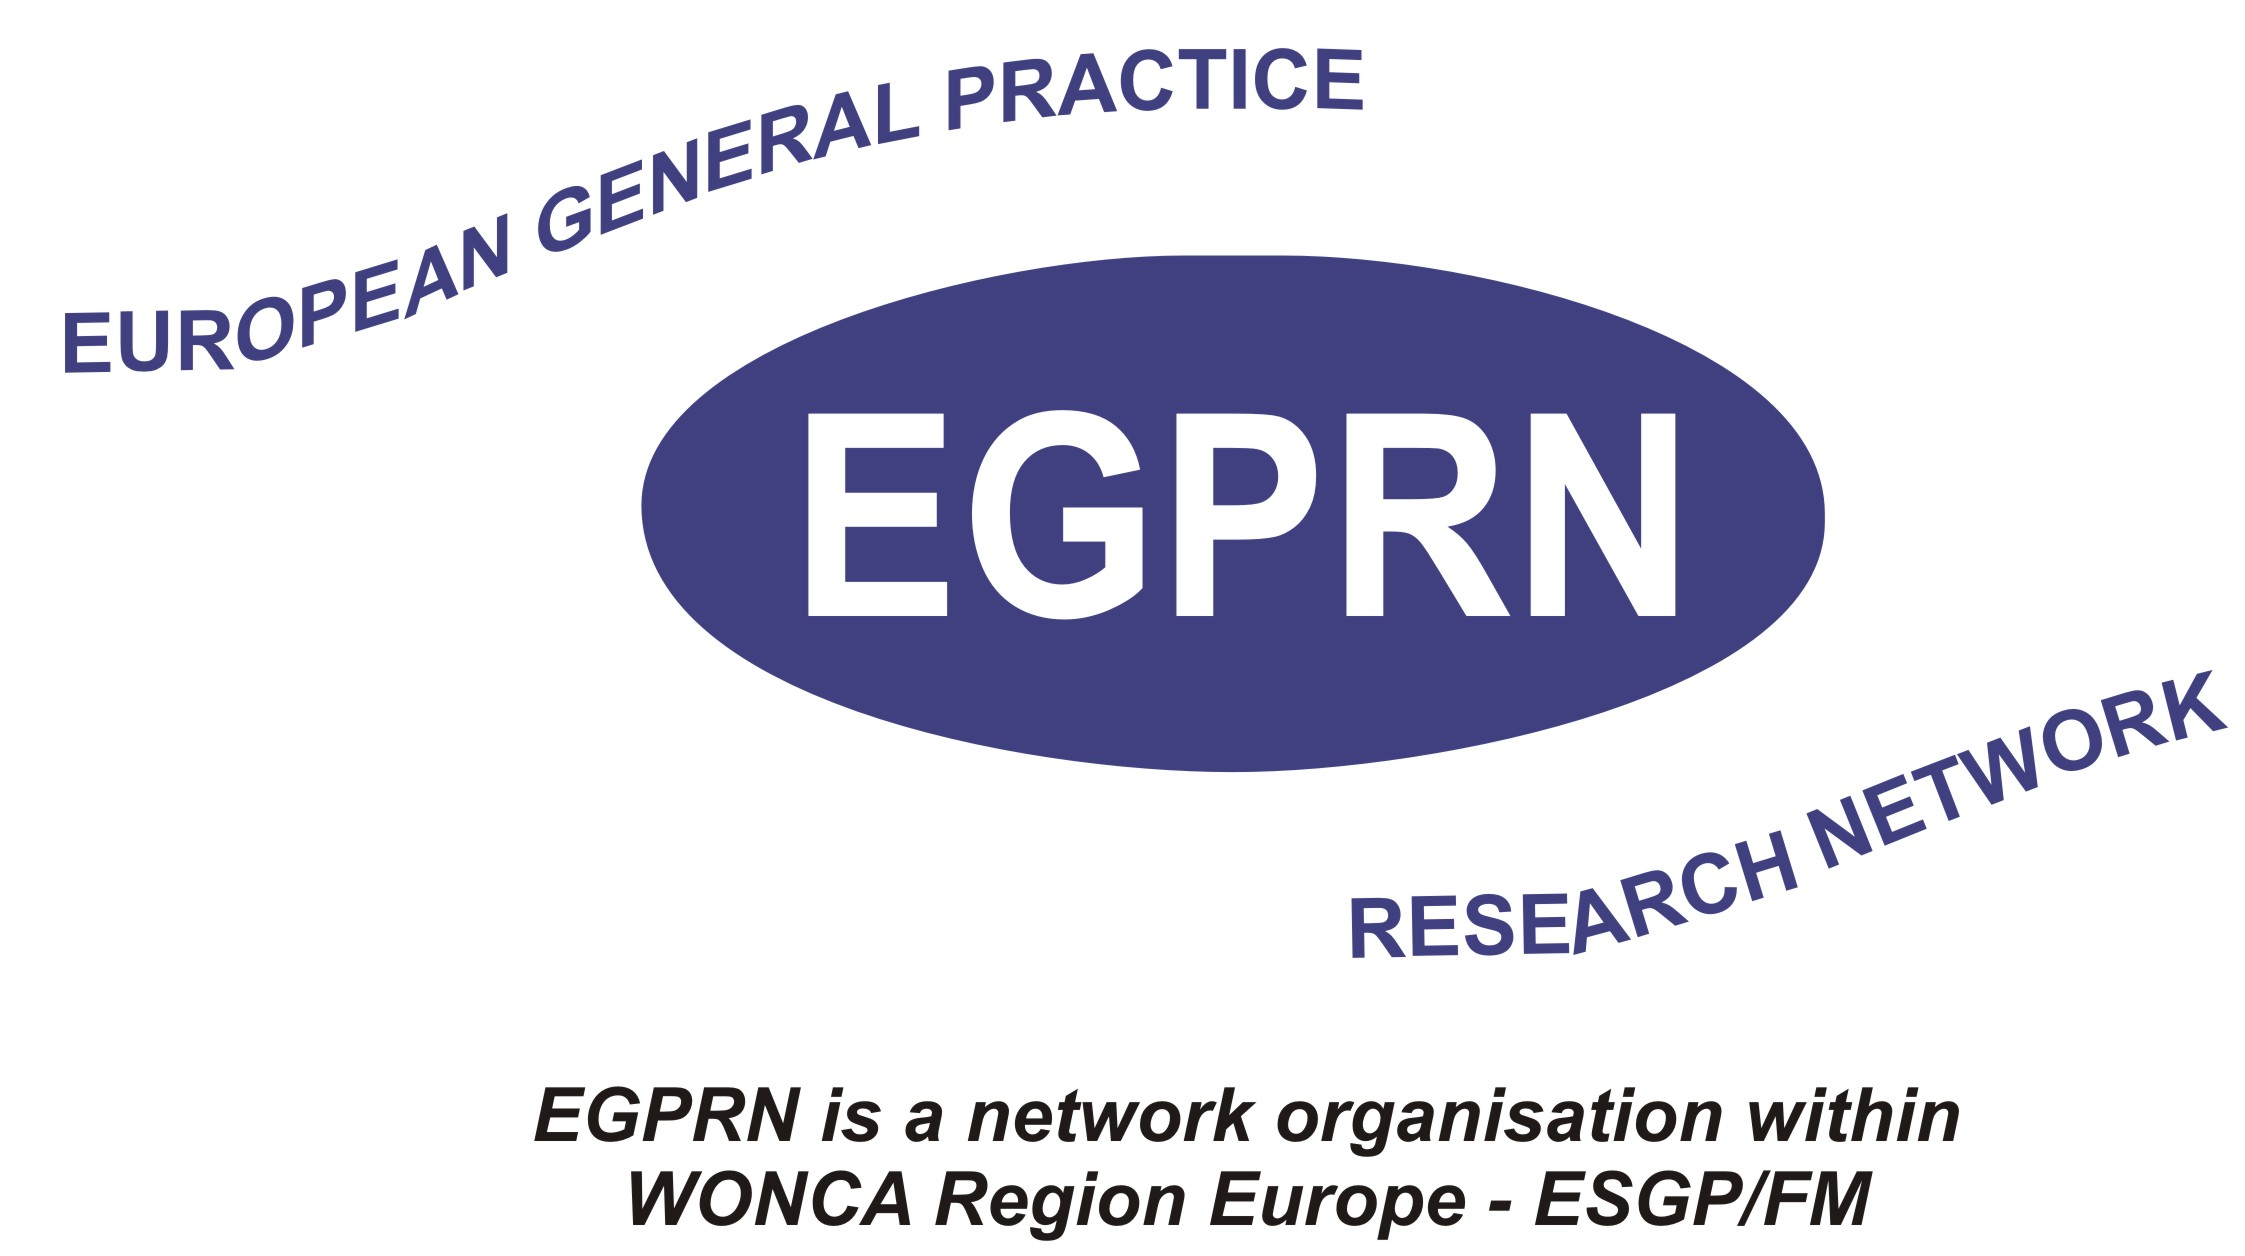 logo for European General Practice Research Network